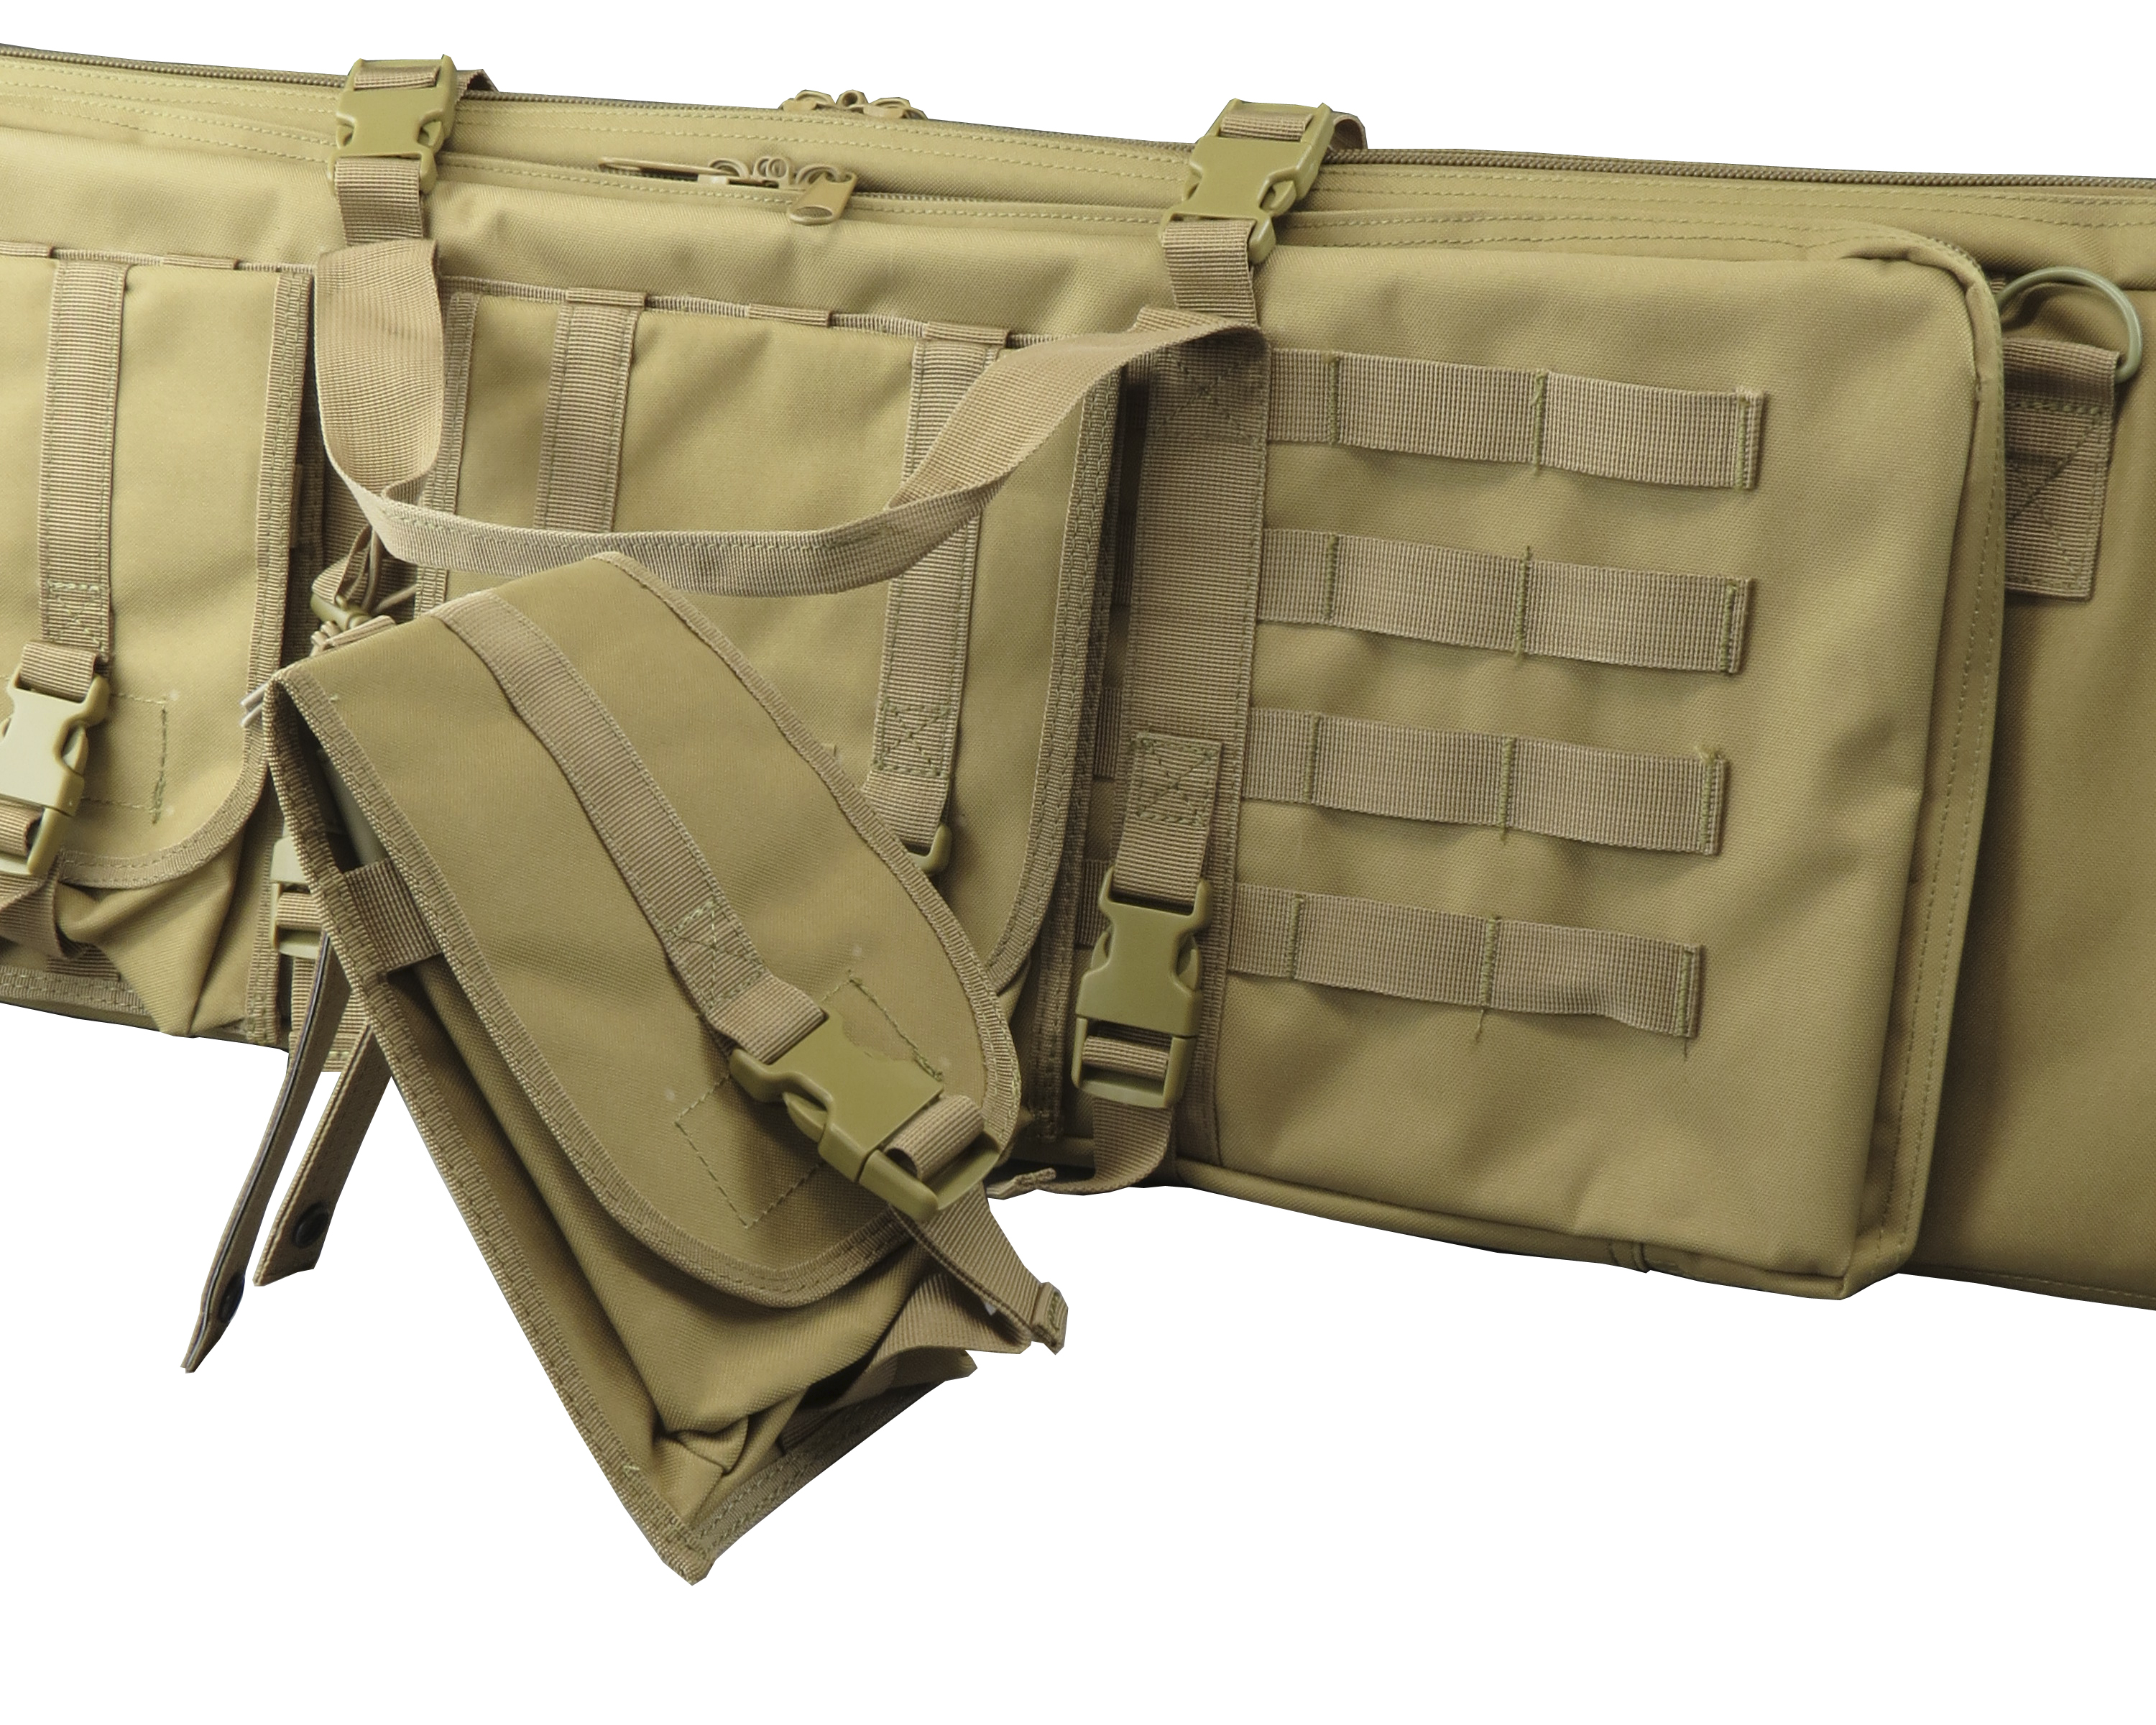 condor_42_single_rifle_case_view_7.jpg